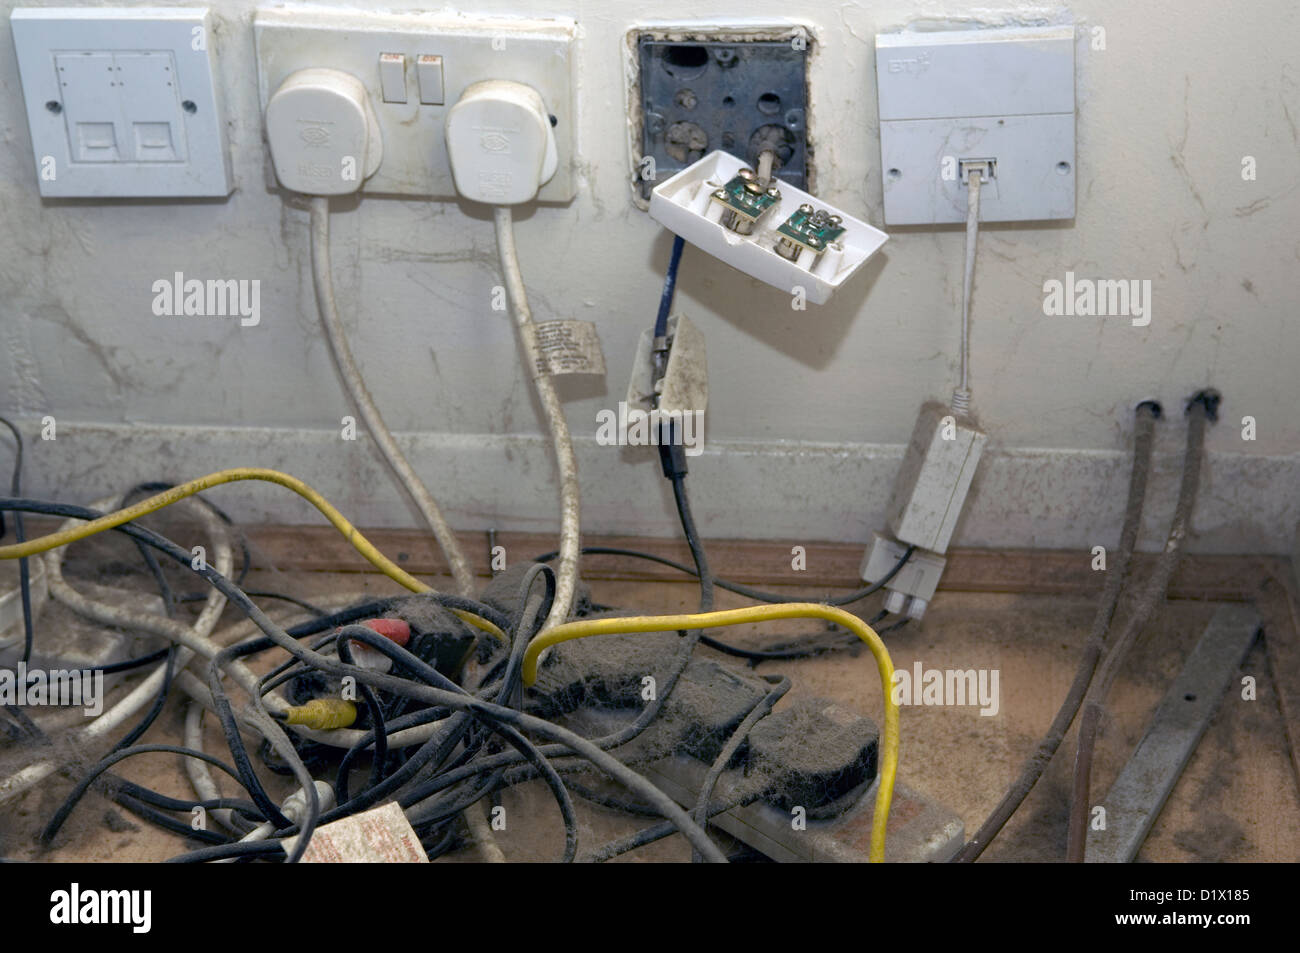 hight resolution of dusty power cables and electrical plugs in a british household